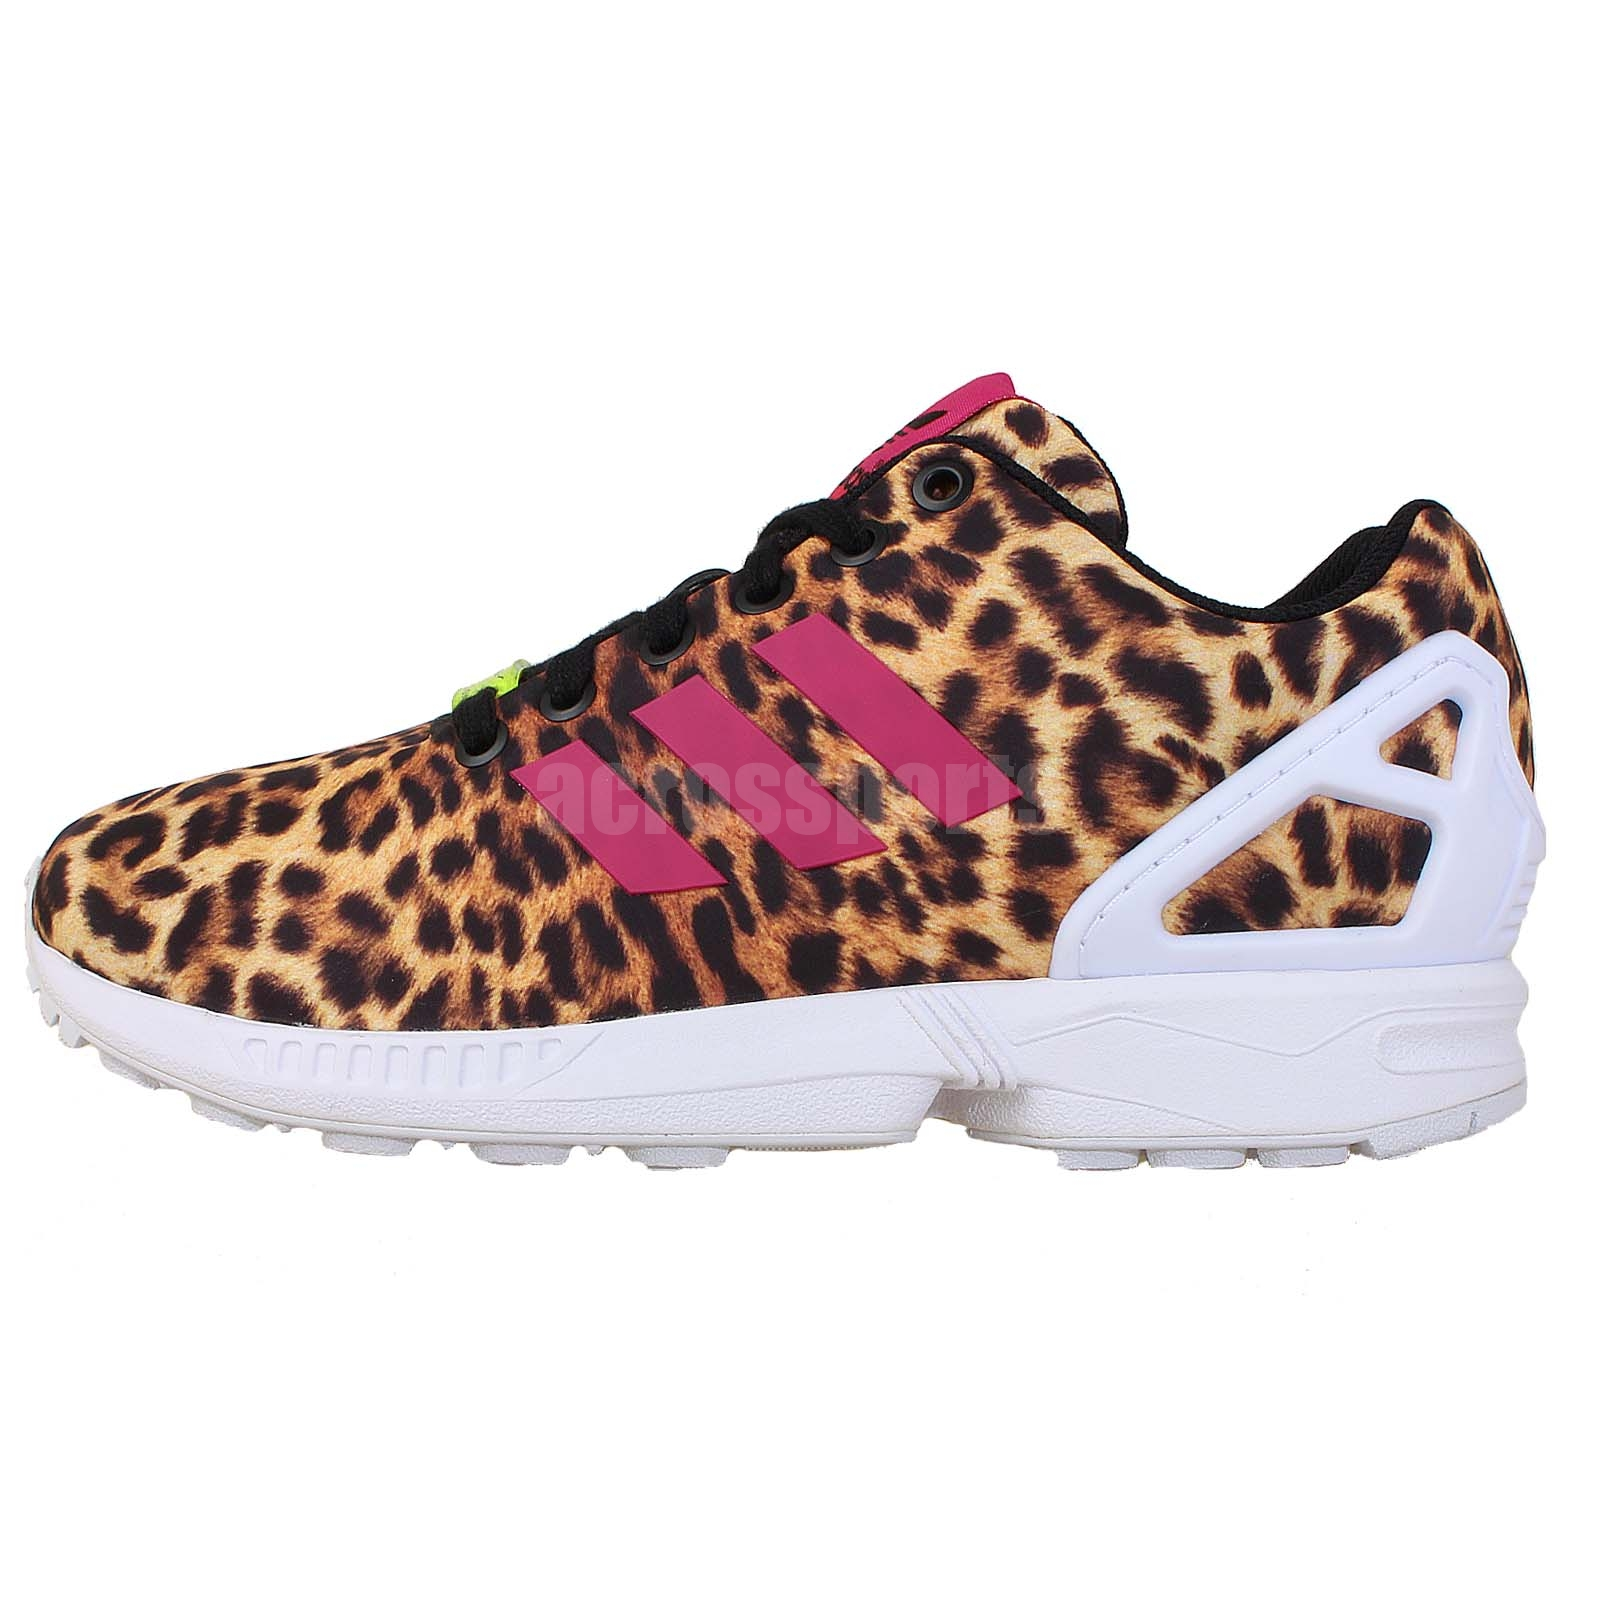 Simple Per CustomerNike Air Presto Leopard Womens Nike Air Max Wright Mens Red White Nike Air Max Nike Air Max Wright Mens White Cool Grey Metallic Silver Wright Men Rings Adidas Black And White, Nike Presto Online Sale Nike Trainers Shoes